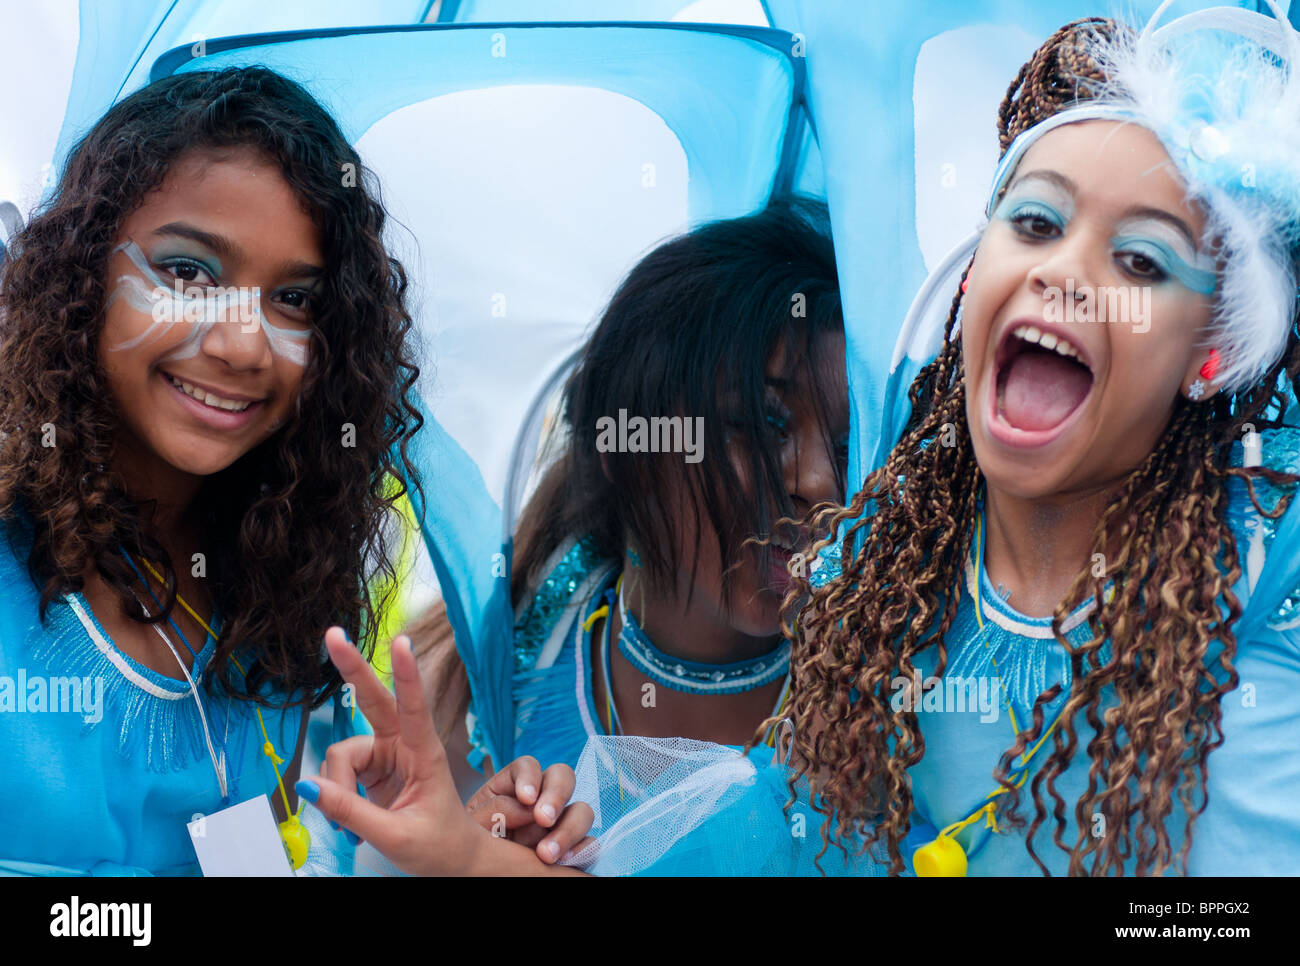 Girls in costume having fun at the Notting Hill Carnival (2010), London, England - Stock Image